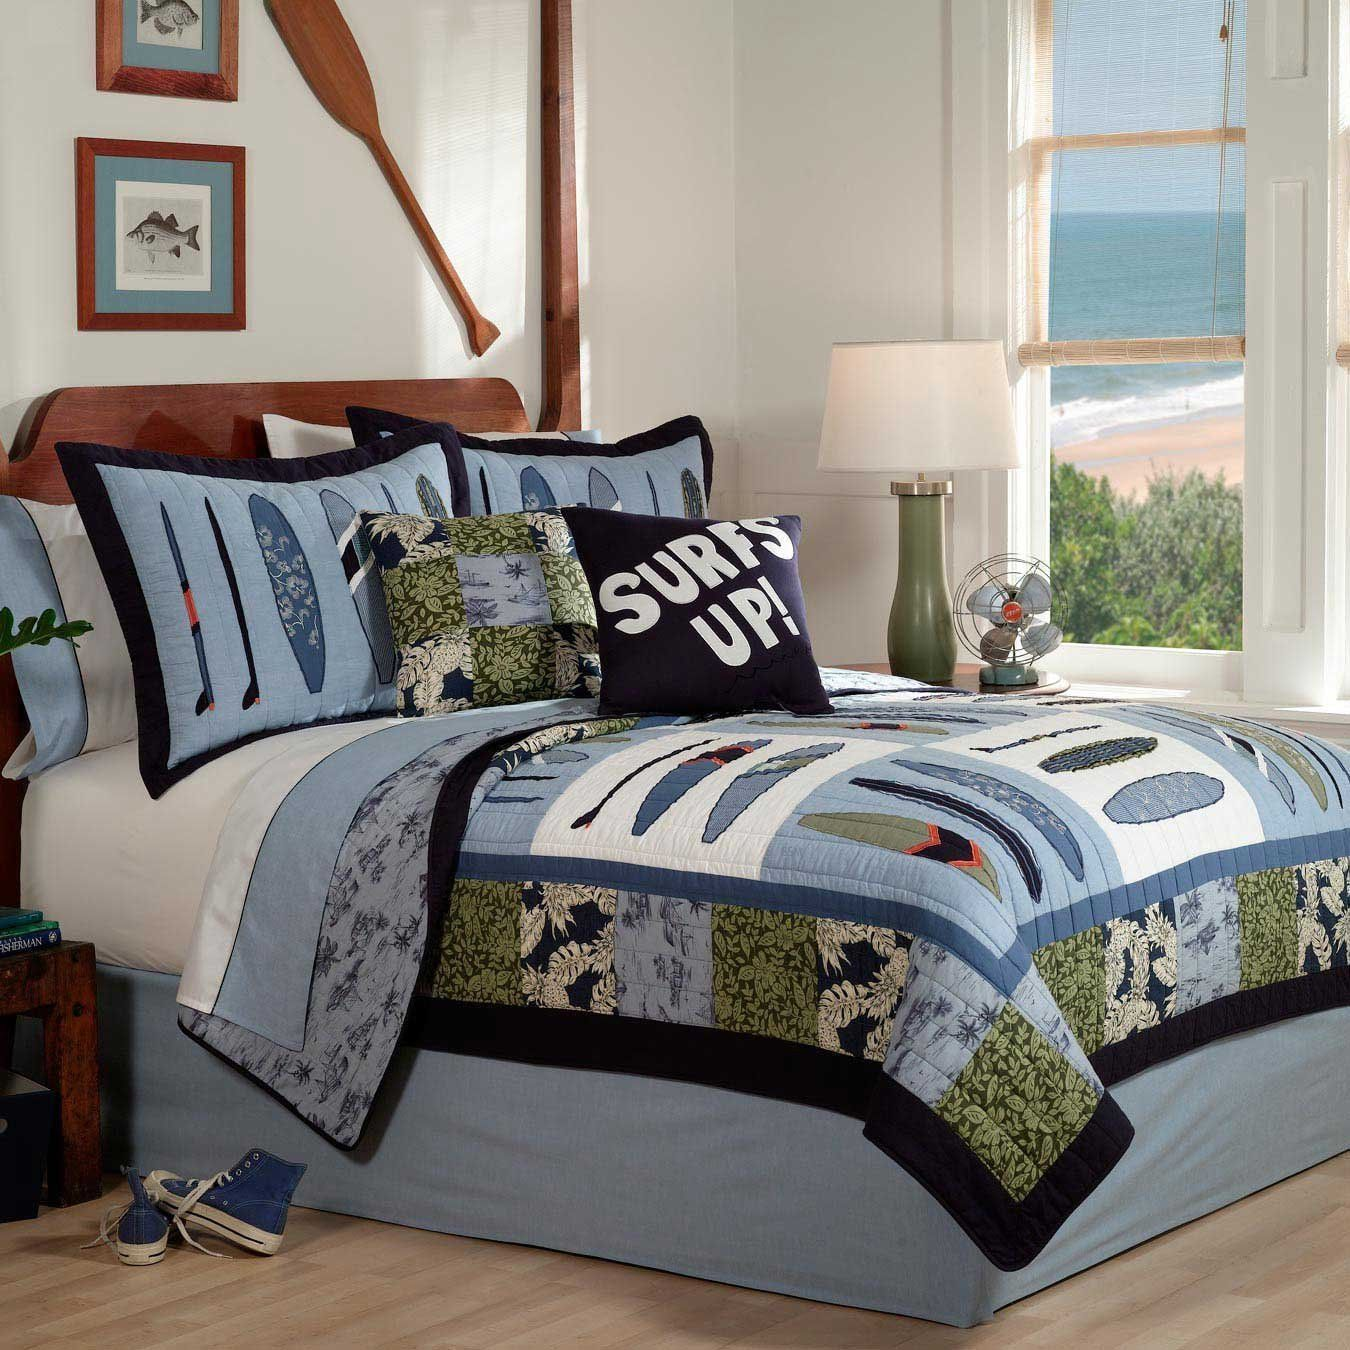 beach themed quilts | ... Beach House, Tropical Full / Queen Quilt ... : tropical quilts queen - Adamdwight.com